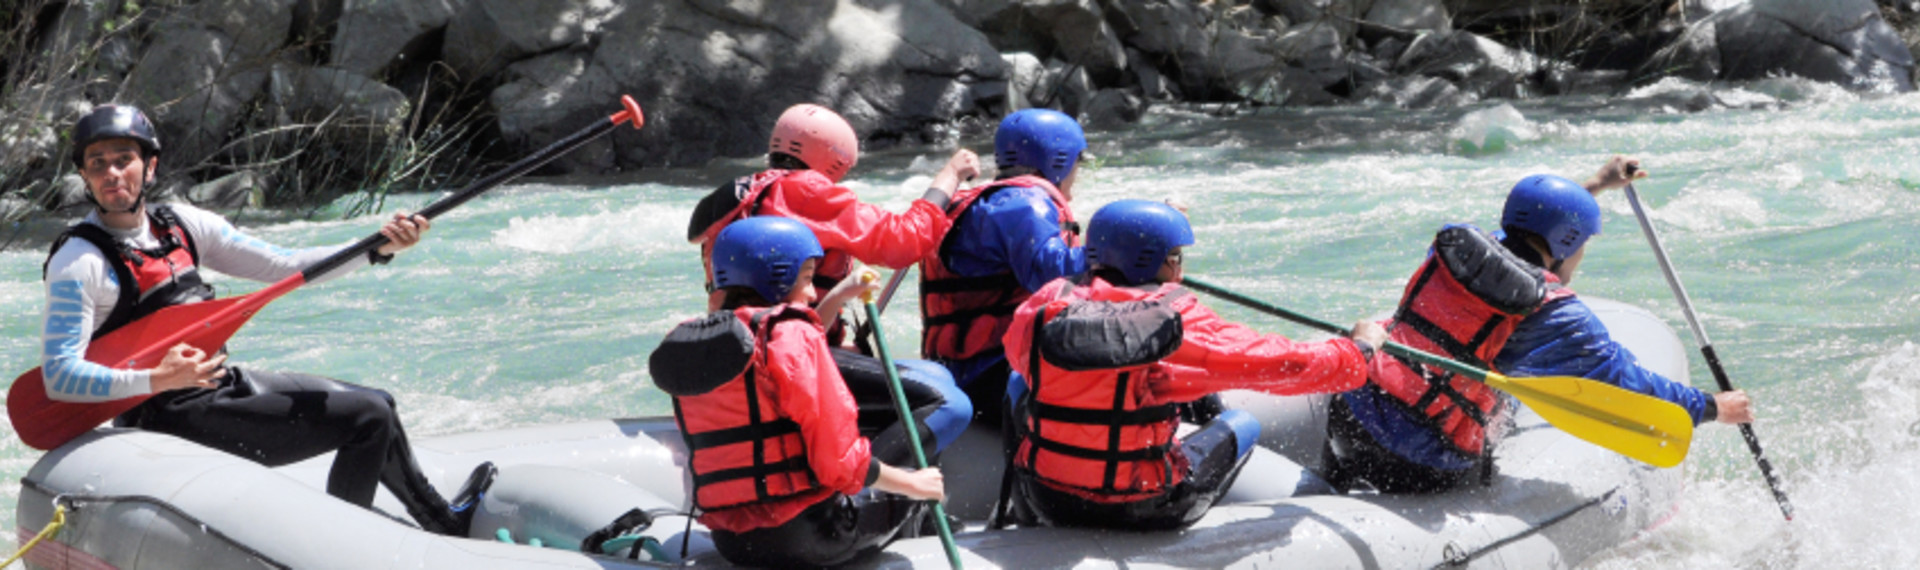 Wroclaw White Water Rafting image